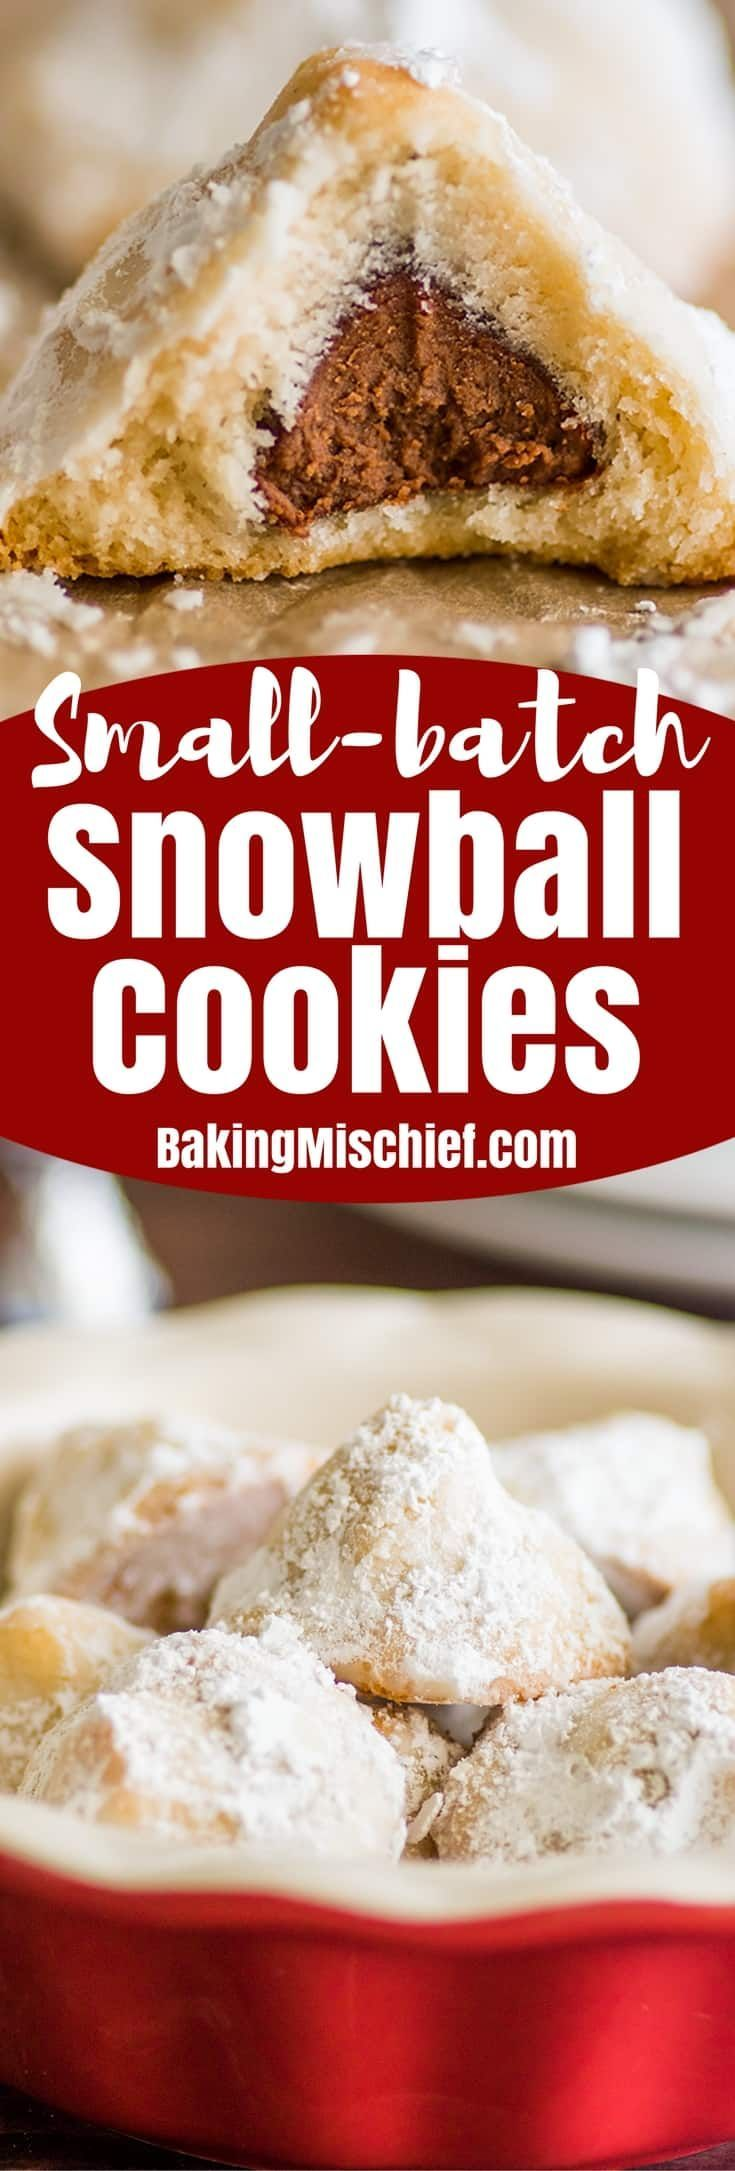 Snowball Cookies are perfect Christmas cookies. They have a cute festive name, they're super easy to make, and they're a crowd-pleaser, so everyone's happy when they show up on a cookie plate.   #Christmas   #ChristmasCookies   #Cookies   #Chocolate   #HersheysKisses  